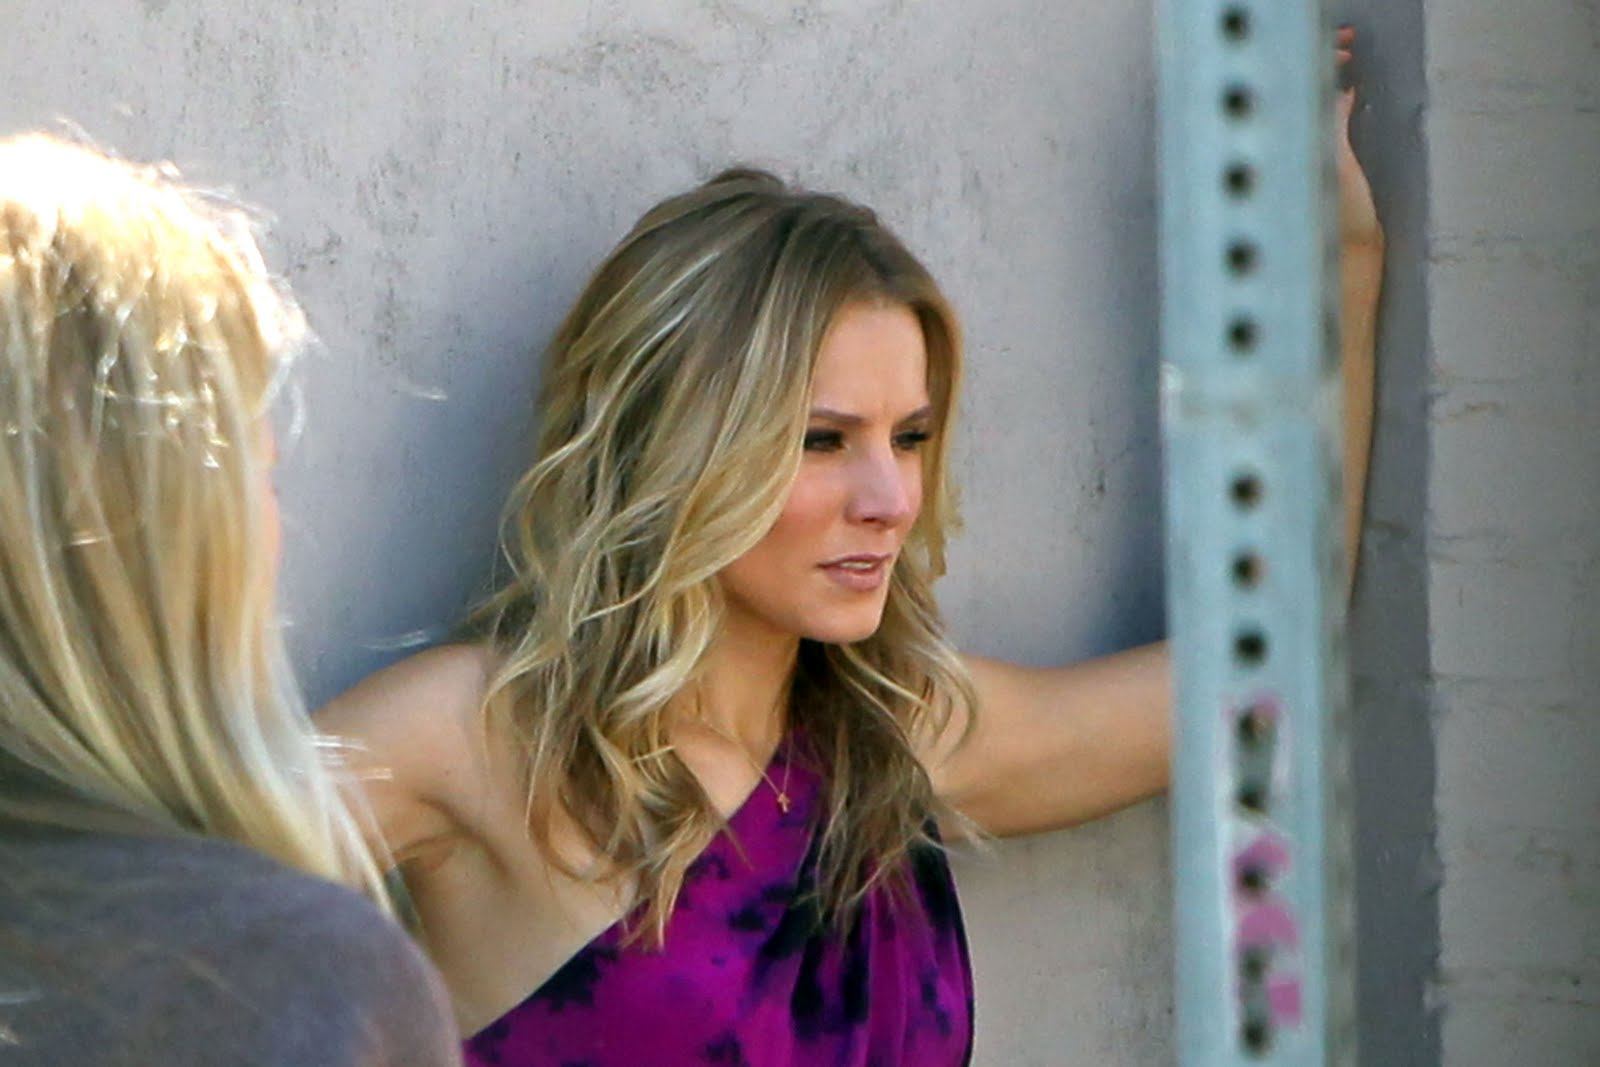 http://2.bp.blogspot.com/_6A8j2EQmANk/TJCSEmFtCbI/AAAAAAAAPw4/opjK0U9Eo_s/s1600/Kristen+Bell+is+Looking+Hot+in+Purple+Dress7.jpg